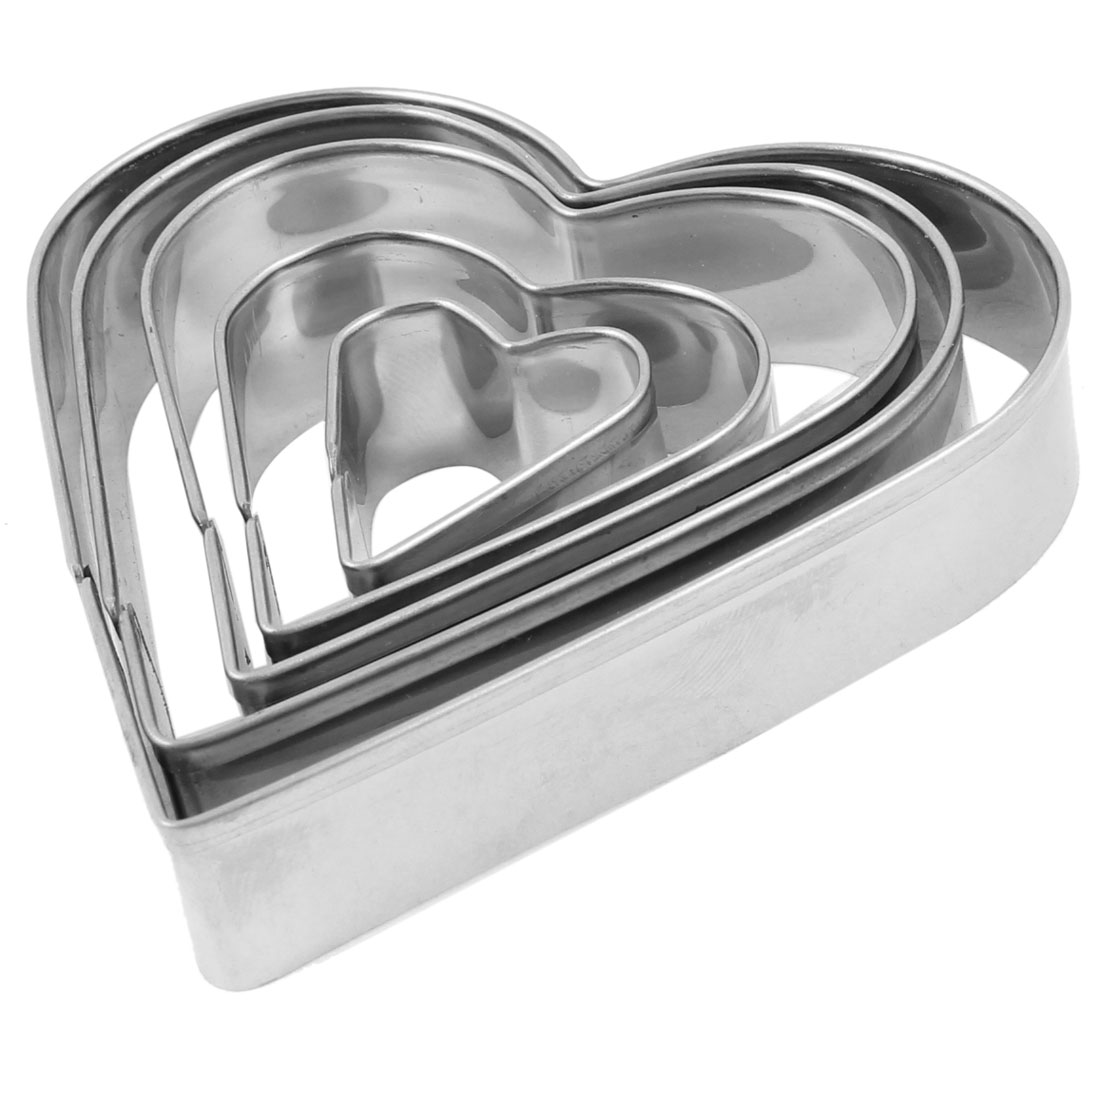 Unique Bargains 5pcs Heart Shape Kitchen Bakeware Pastr Biscuit Baking Cutter